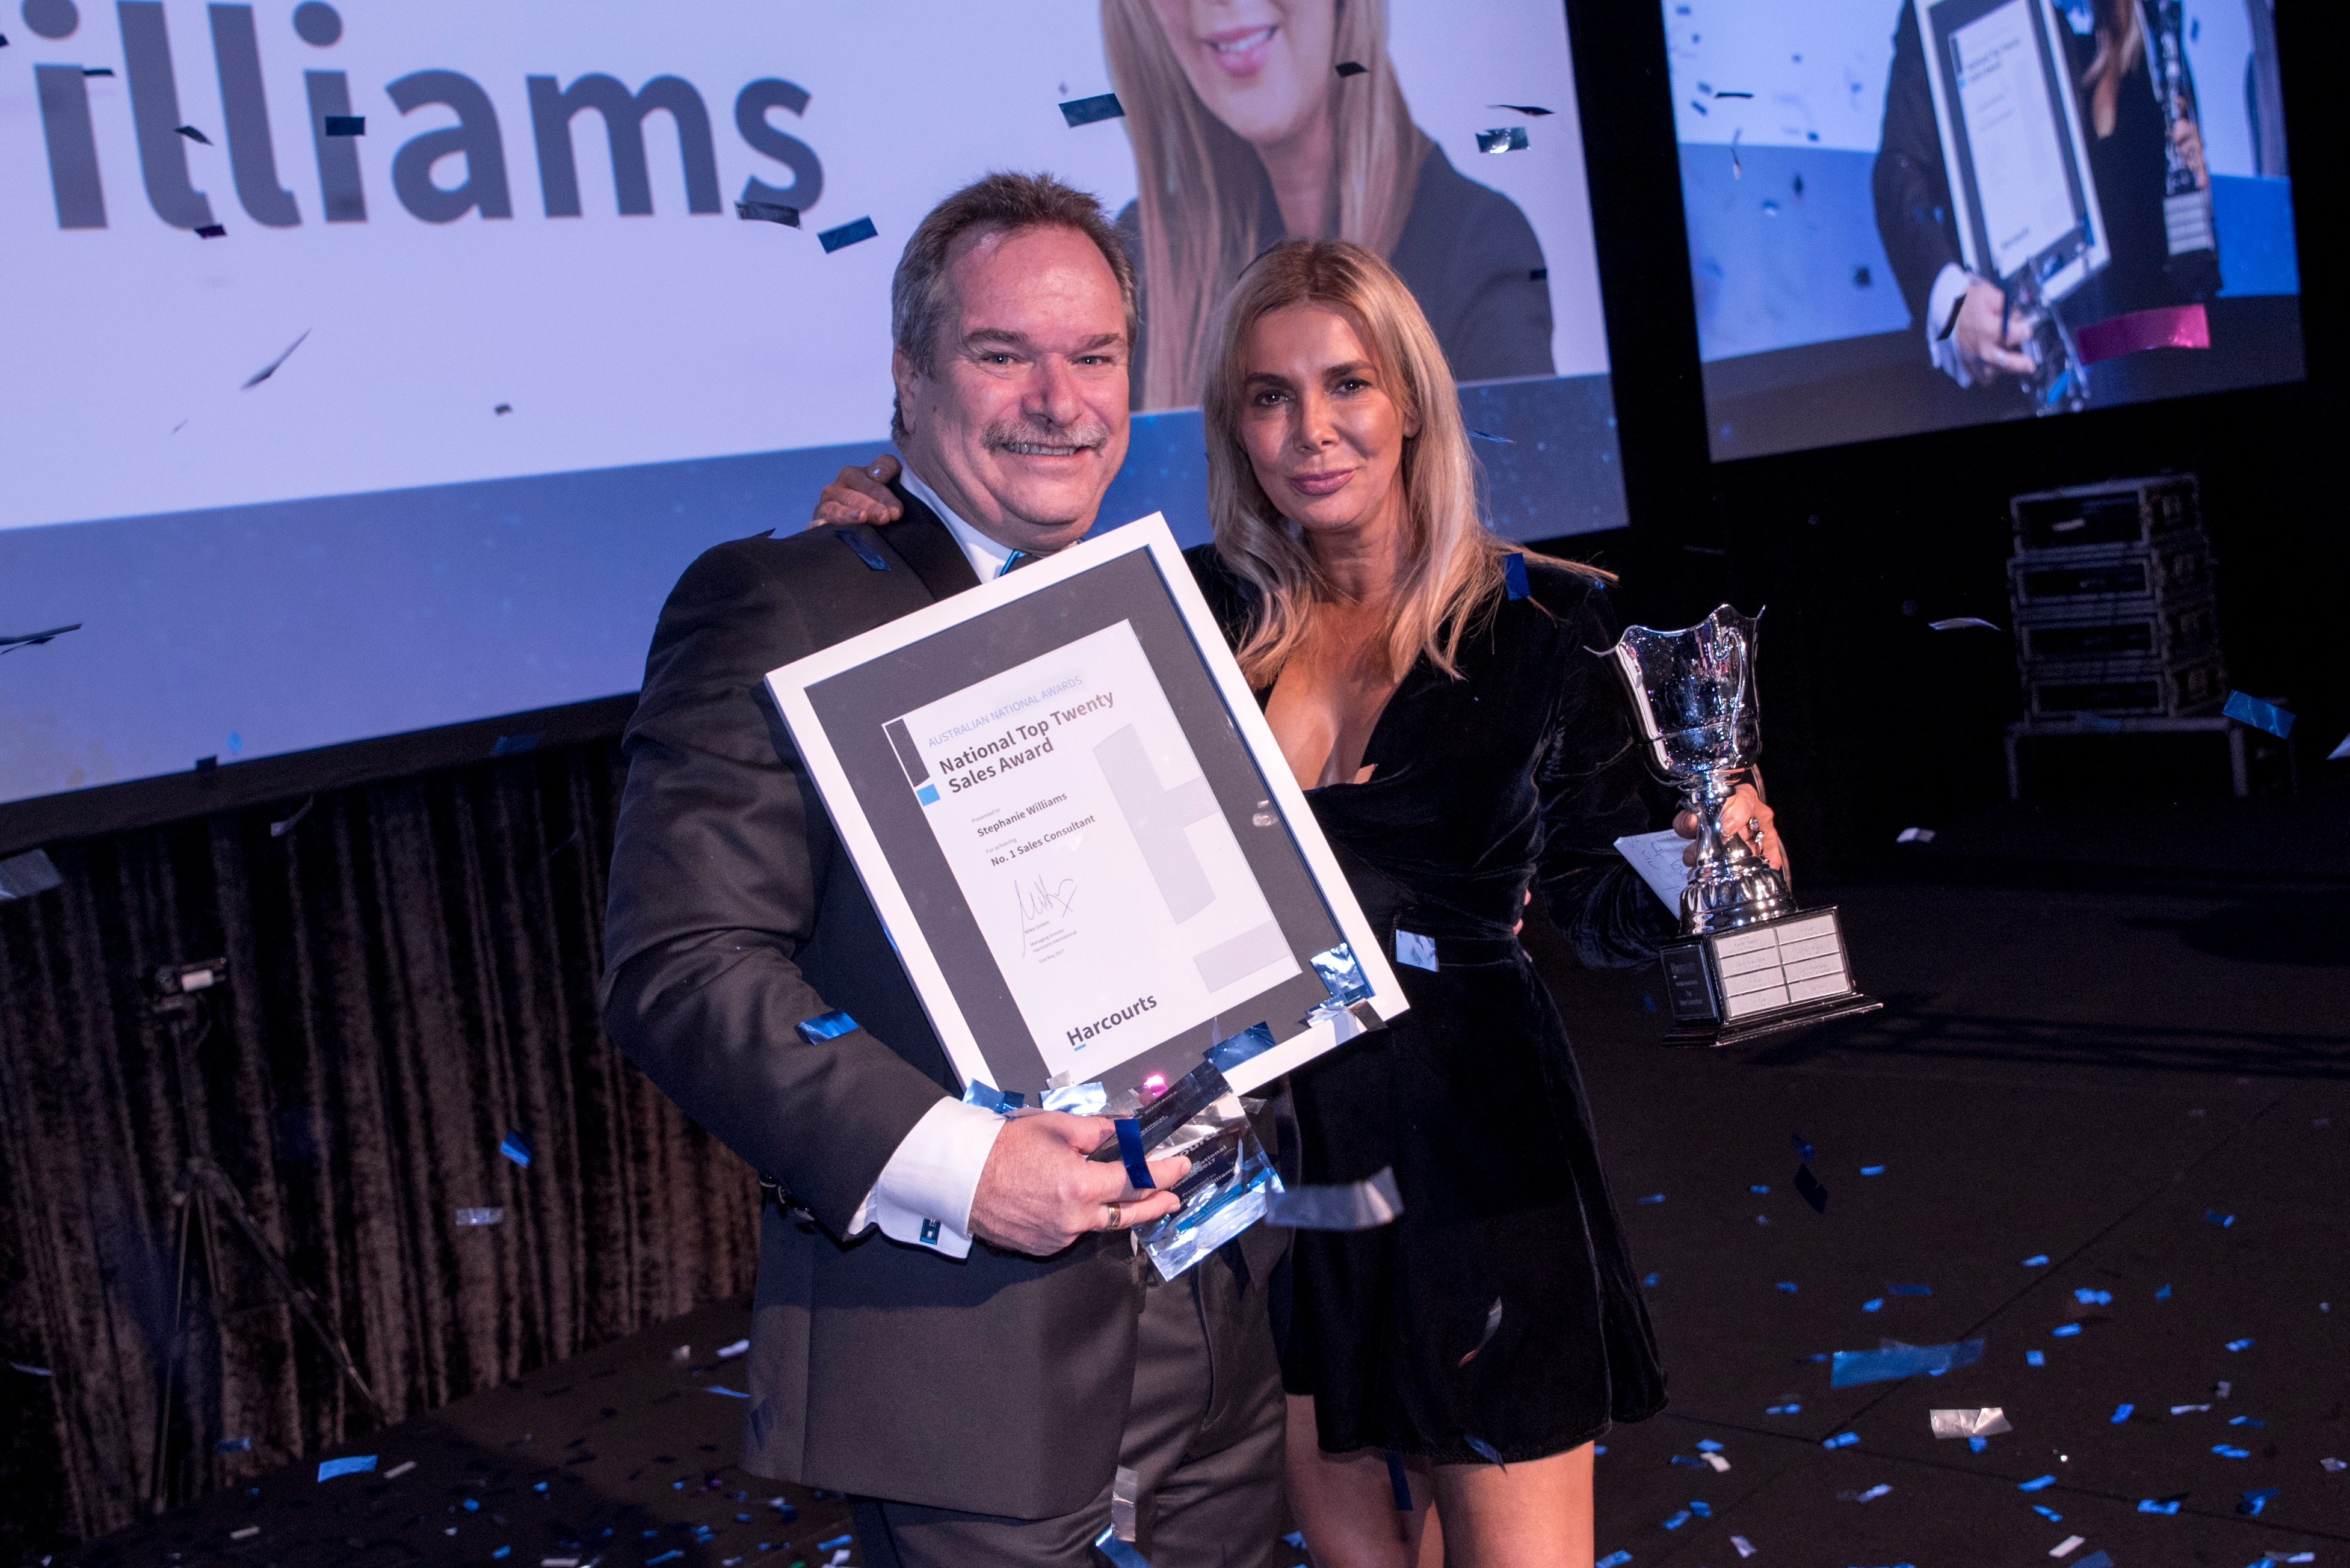 Adelaide's Stephanie Williams Named Harcourts Australia Top Sales Consultant of the Year